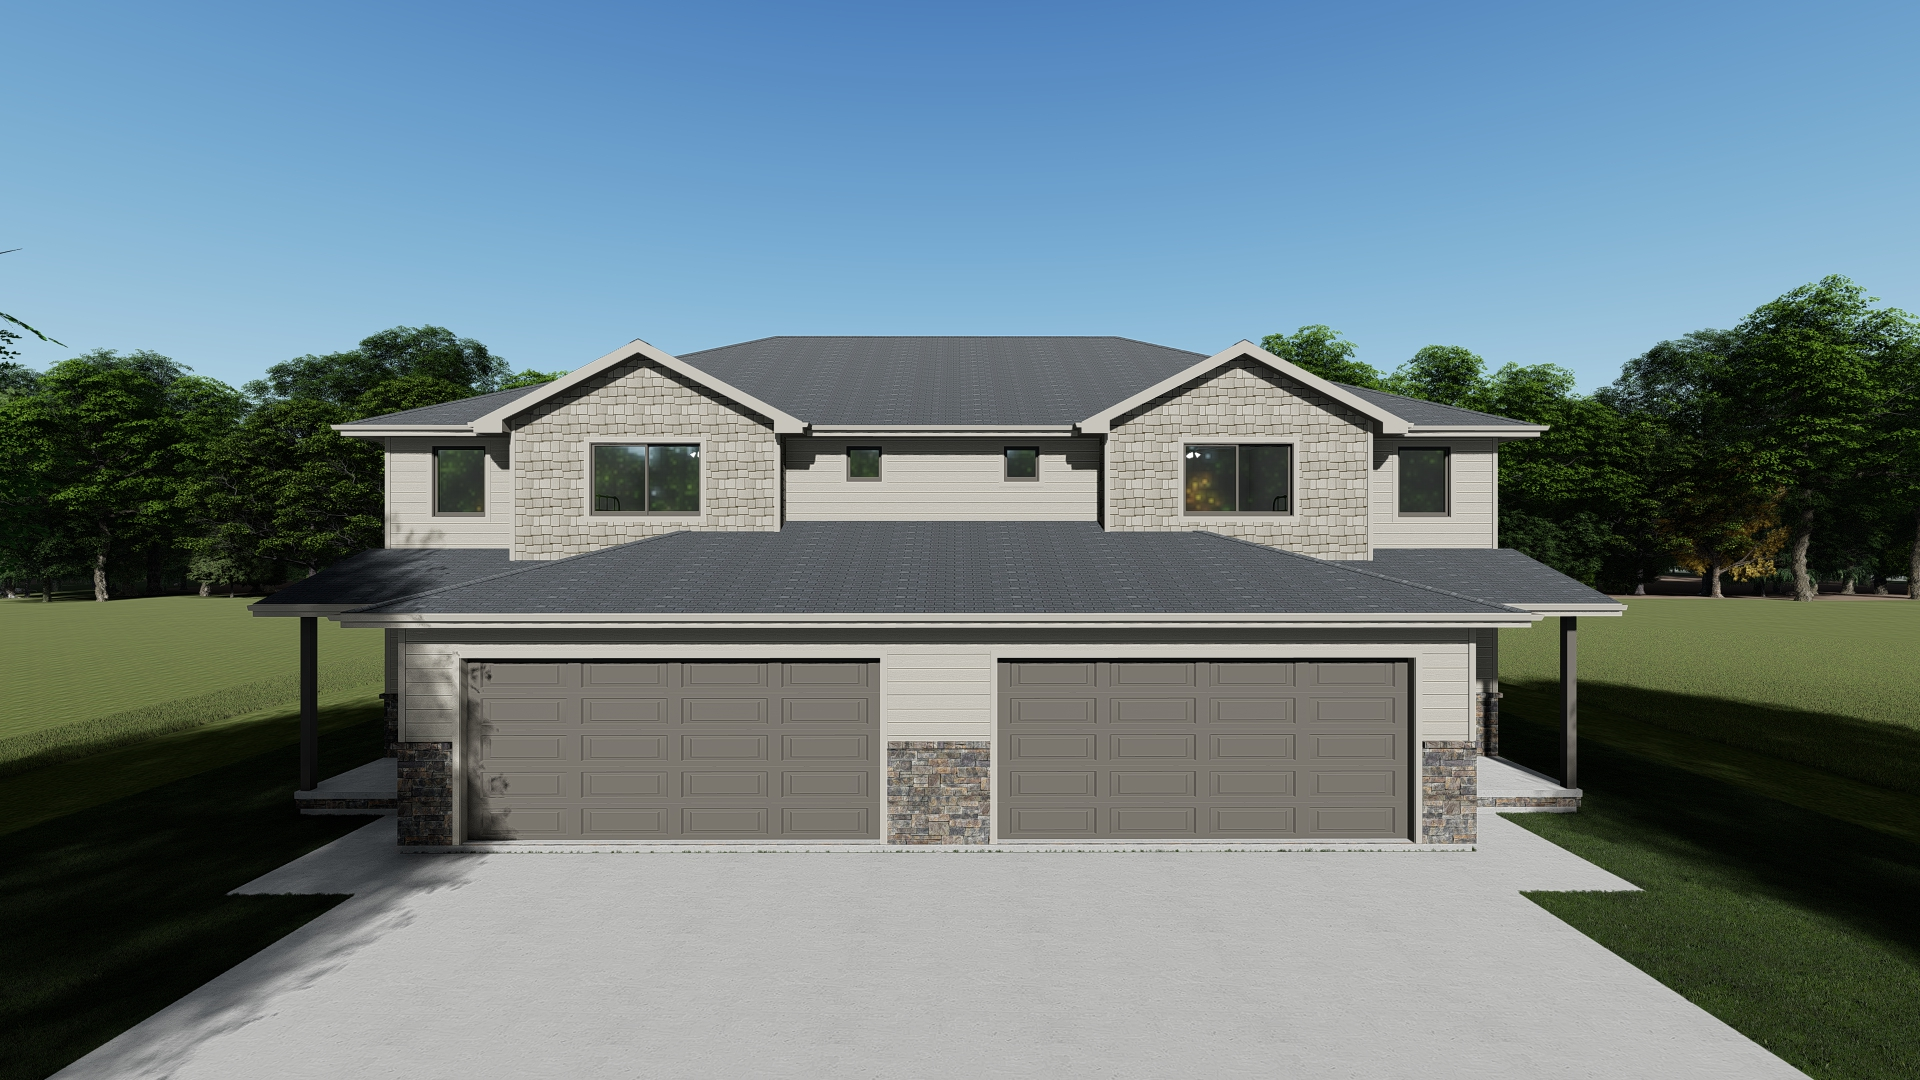 VA-103498 Render_Front Elevation